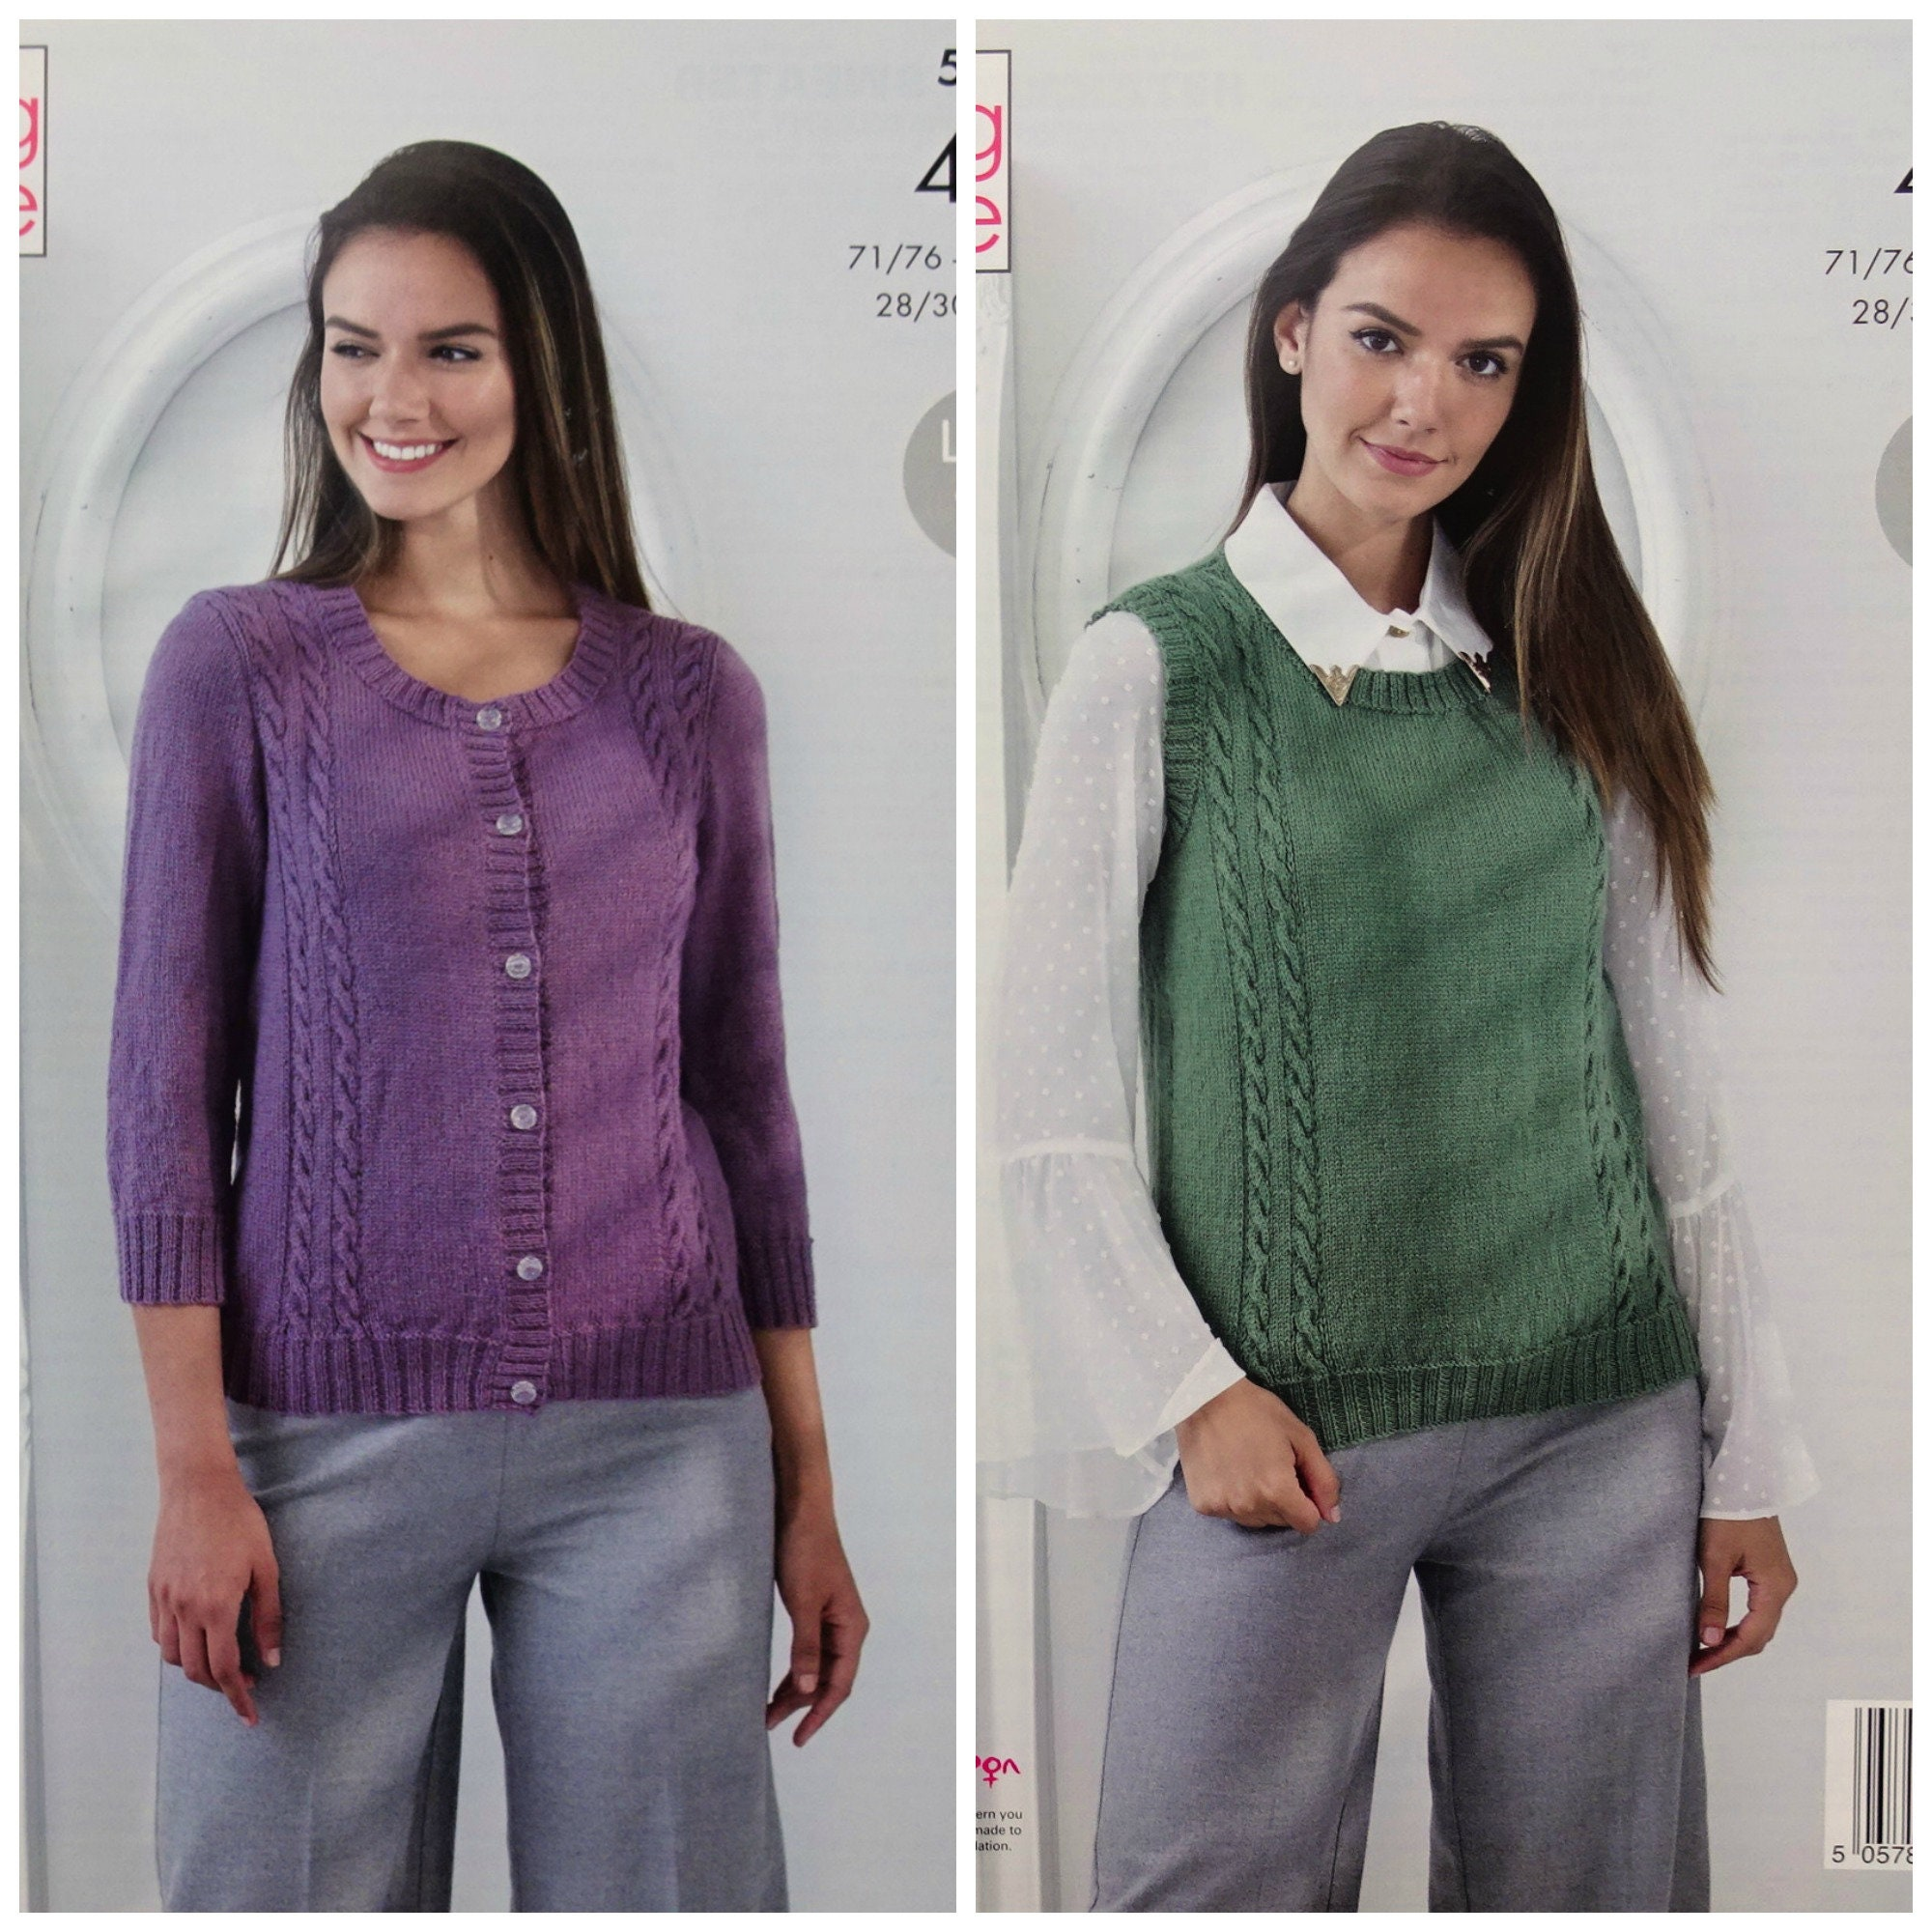 58e61b03a Womens Knitting Pattern K5348 Ladies 3 4 Sleeve Round Neck Cable ...